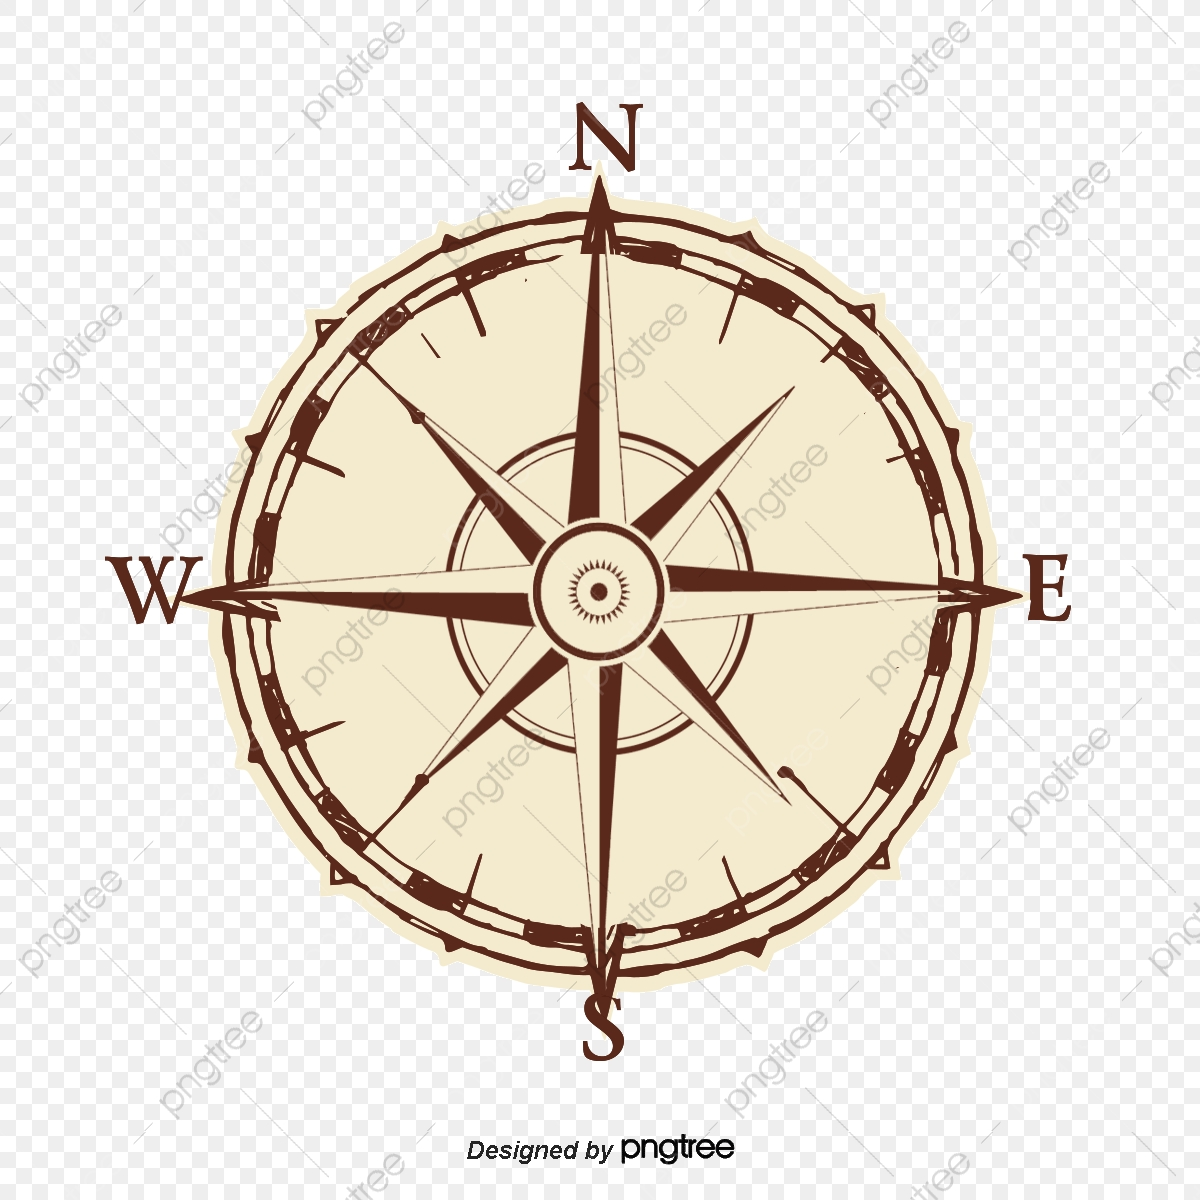 Vector Hand Painted Compass, Vector, Hand Painted, Compass PNG.